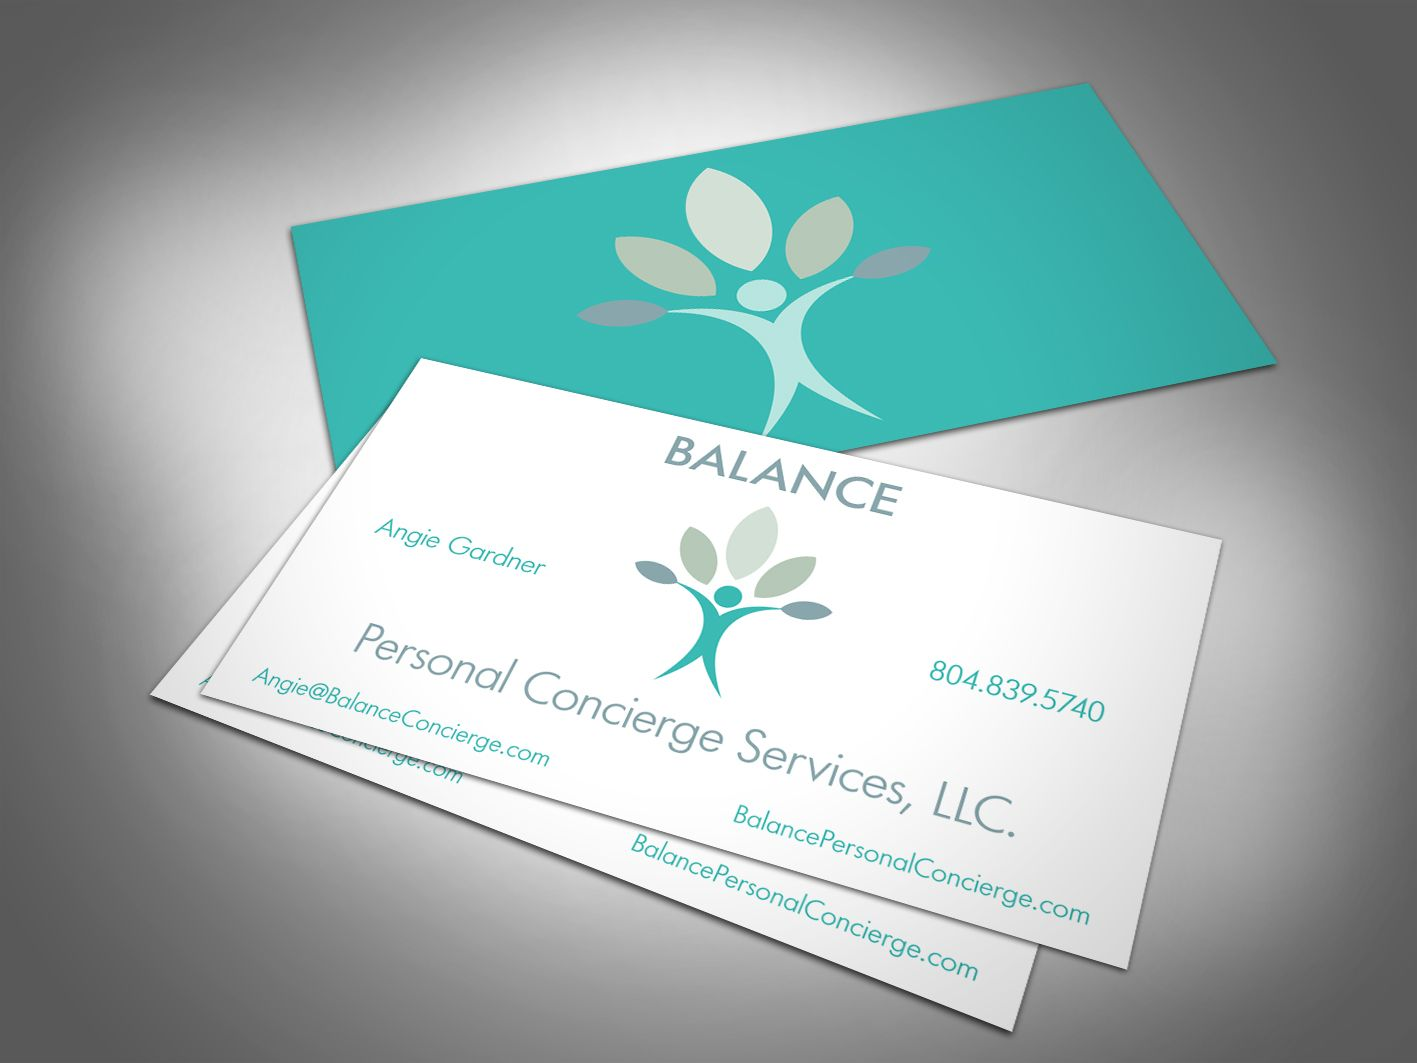 This is a card for a new start up business - a Personal Concierge ...